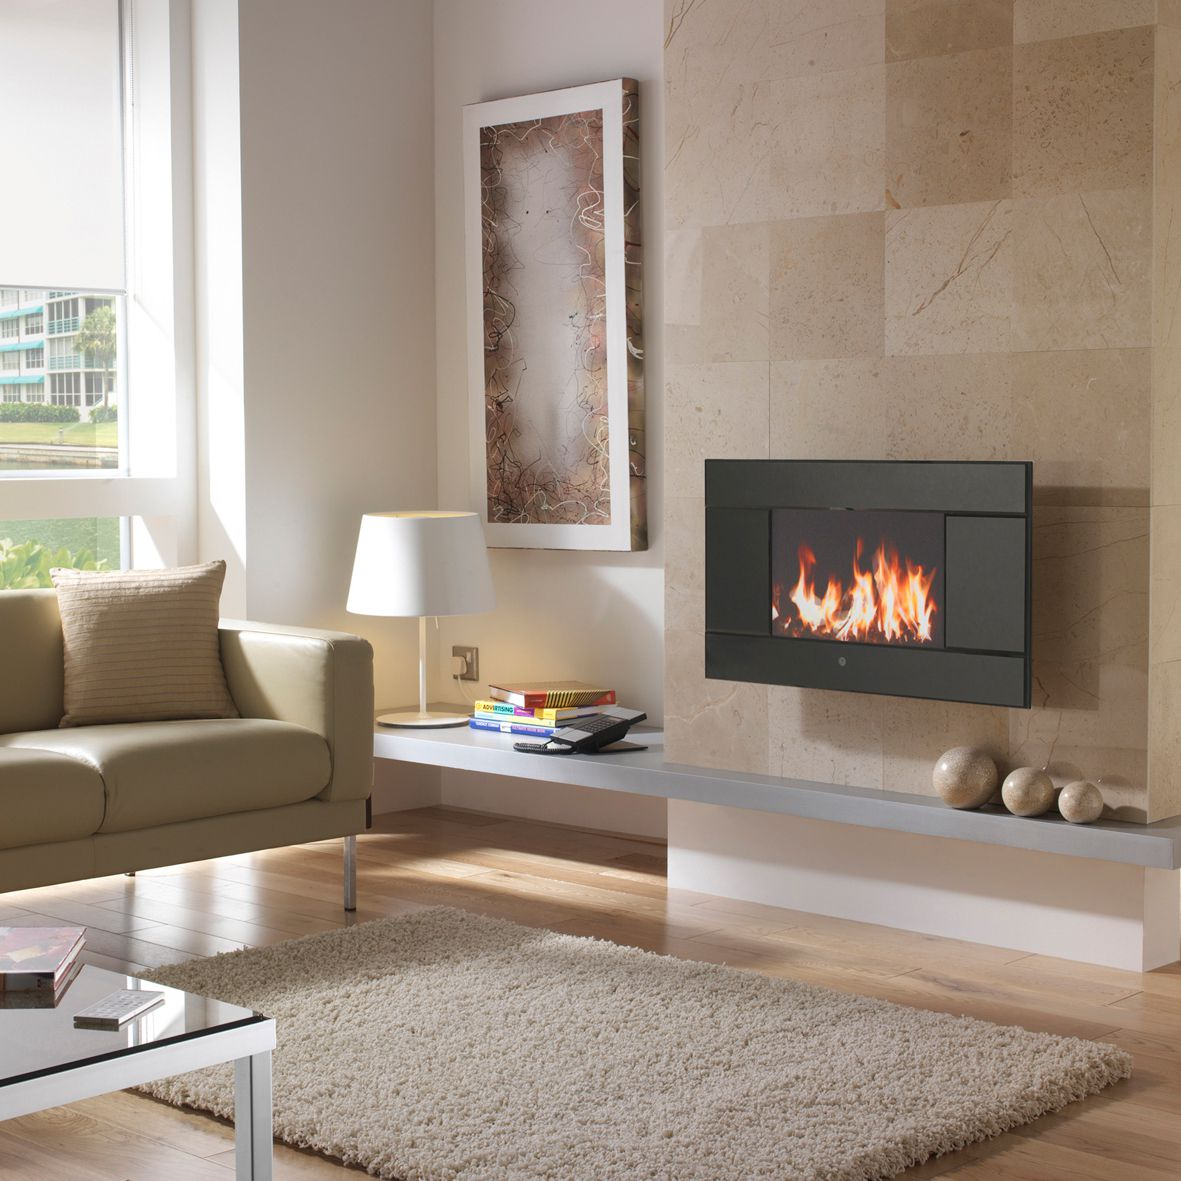 Electric fires are a good way to accessorise a living space